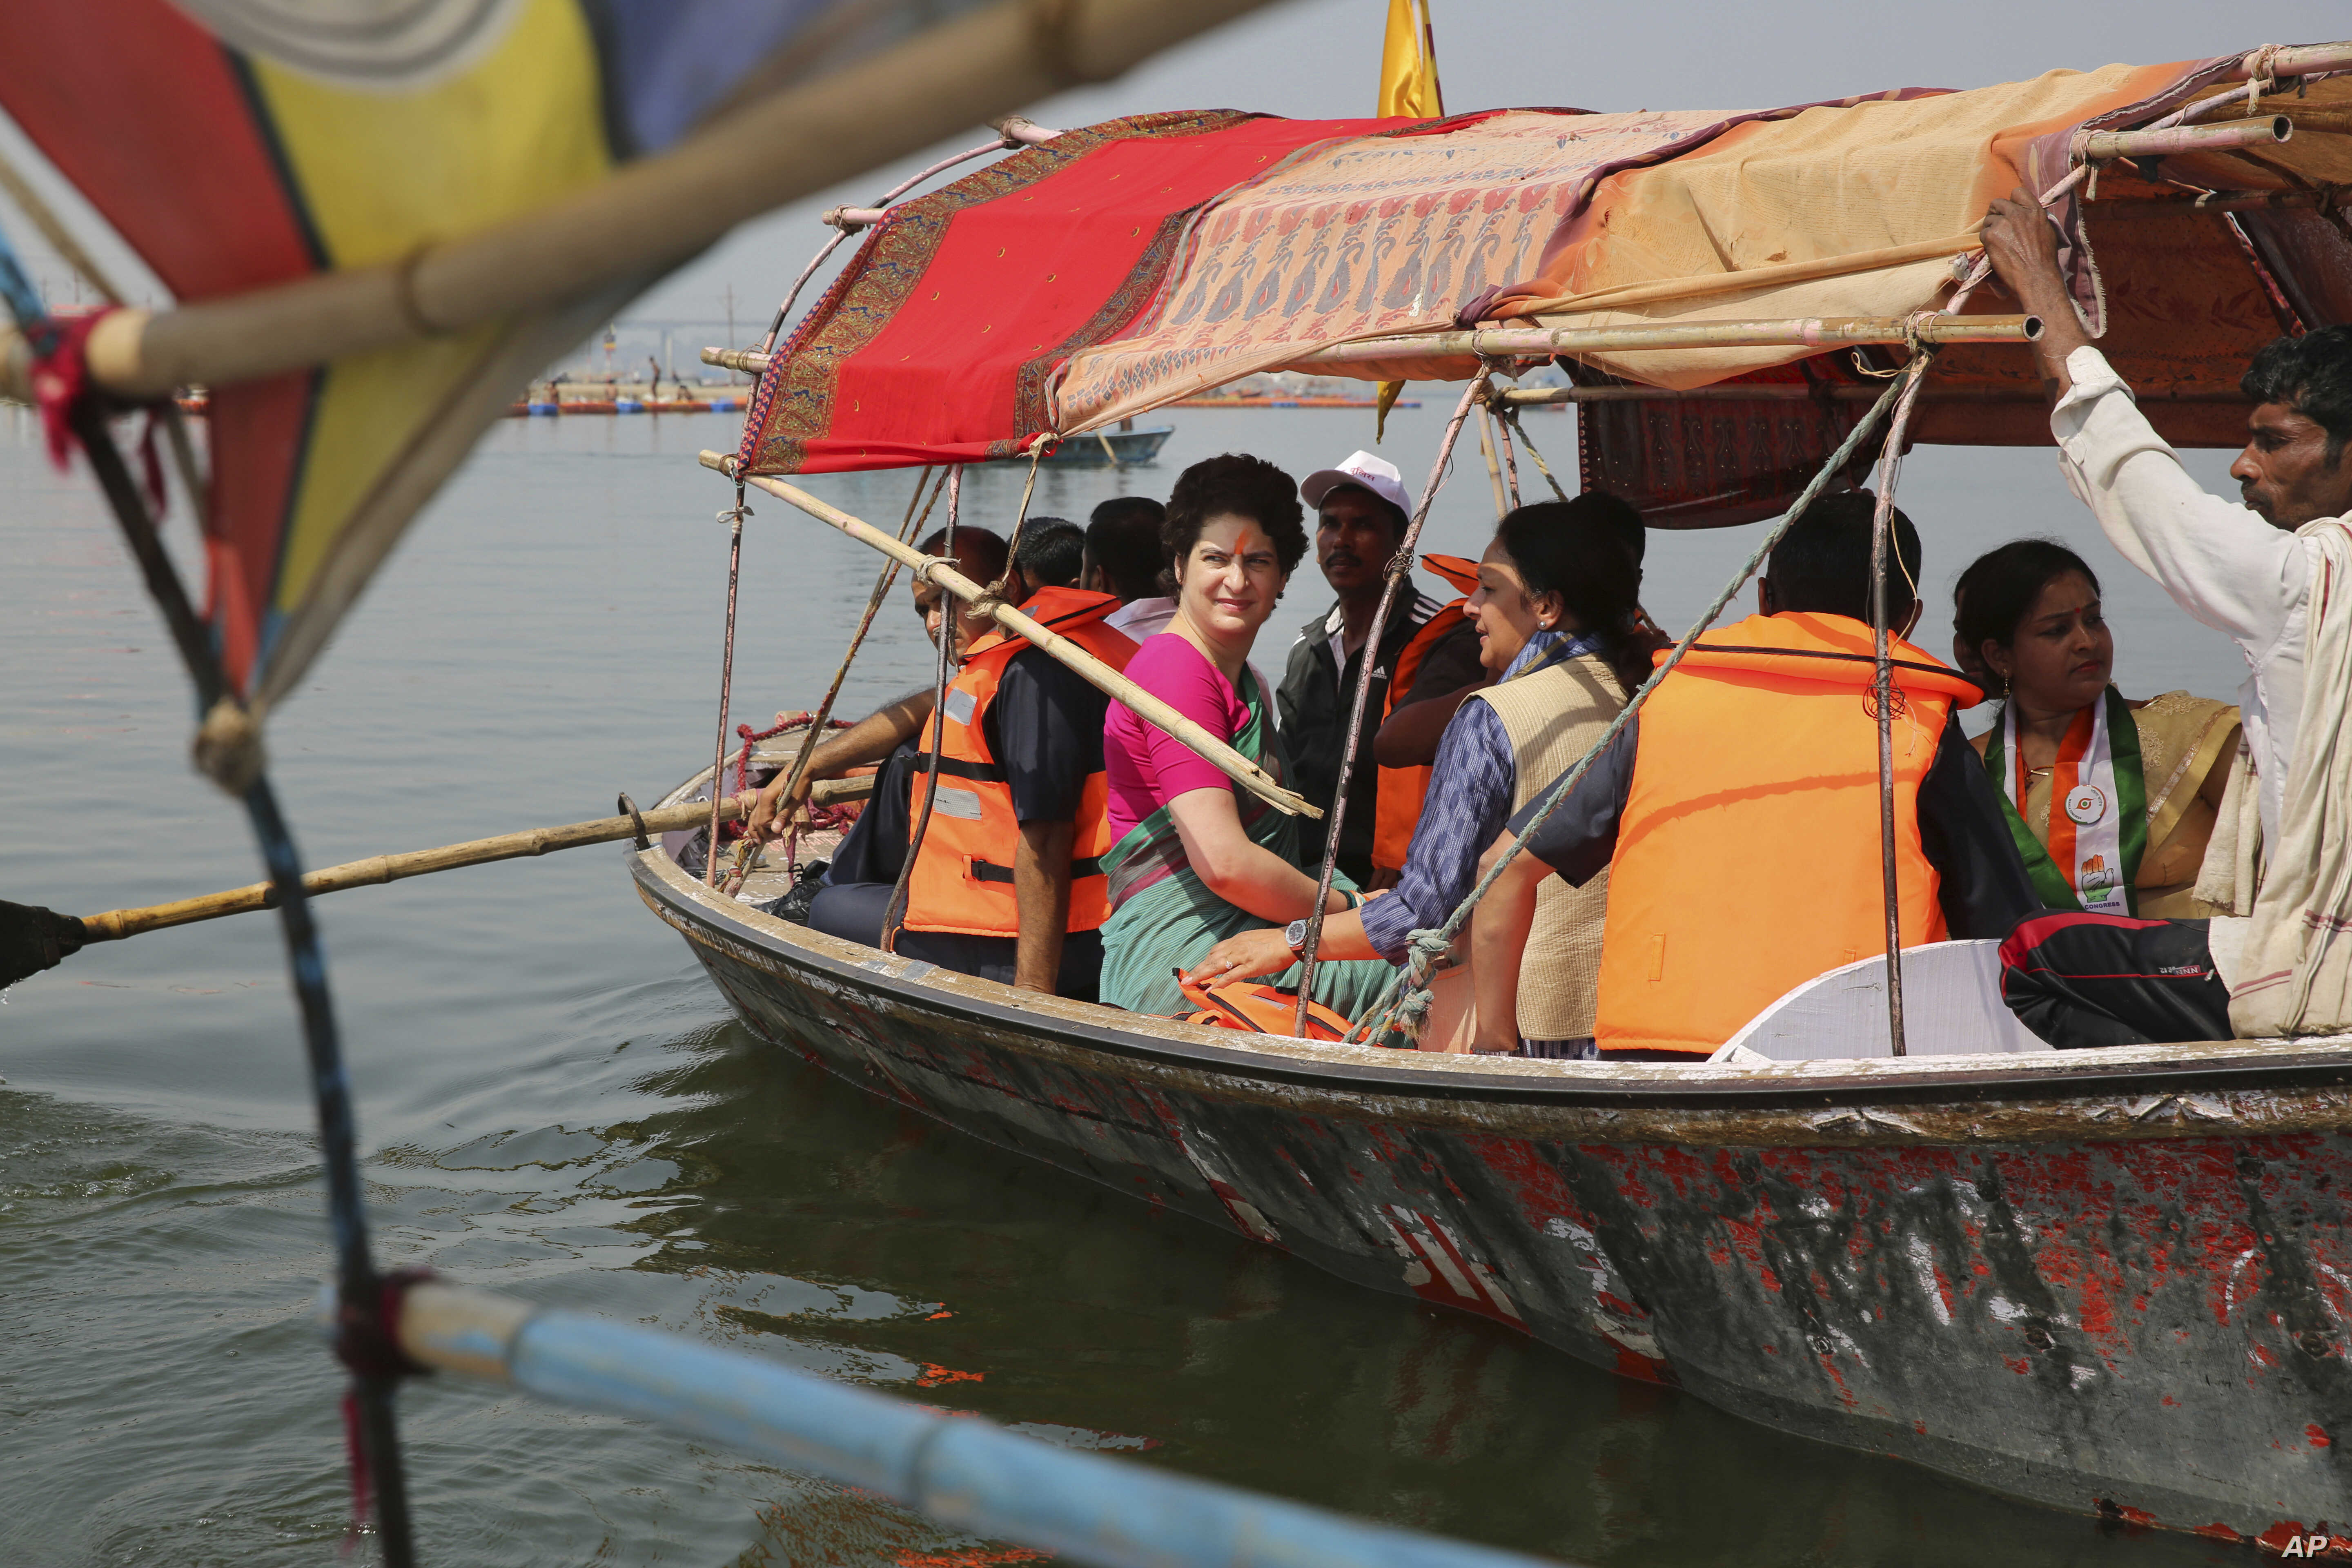 Congress party General Secretary and eastern Uttar Pradesh state in-charge Priyanka Gandhi Vadra, center, takes a boat ride to the Sangam, the confluence of sacred rivers the Yamuna, the Ganges and the mythical Saraswati, in Prayagraj, India, March 1...